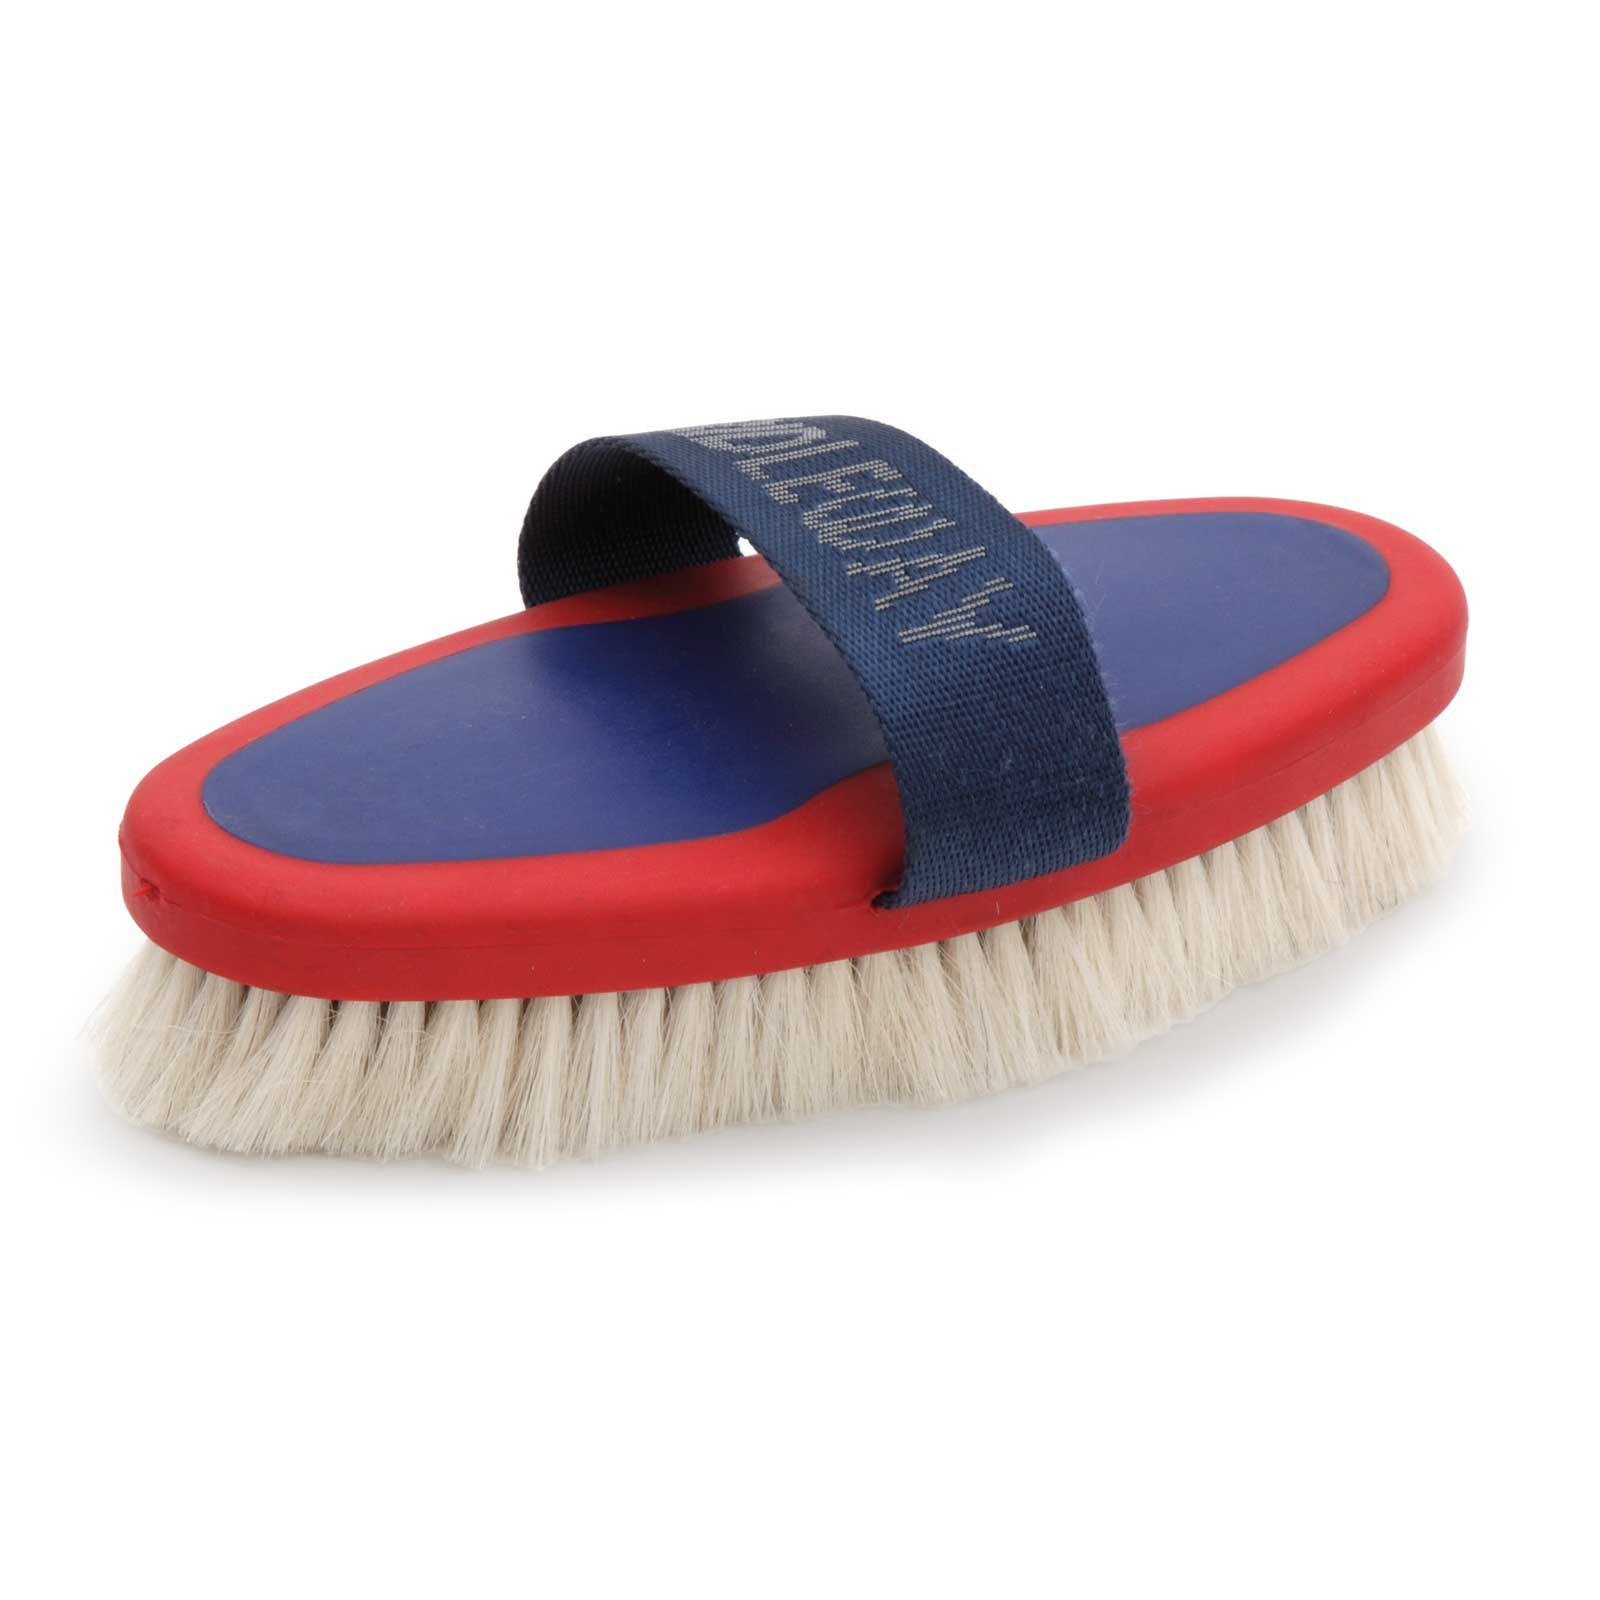 Bridleway Goat Hair Body Brush